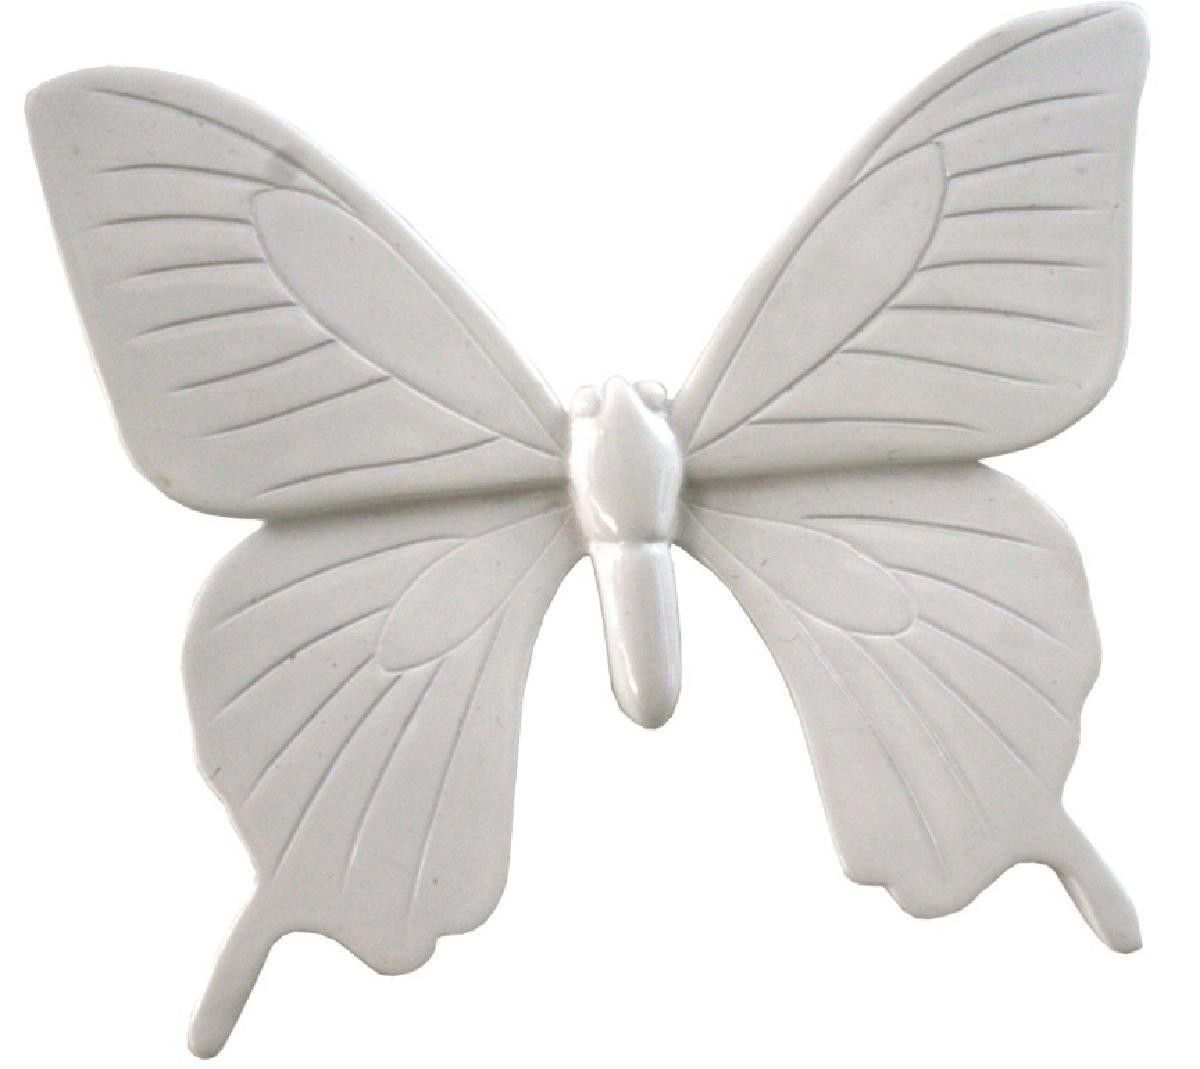 SCULPTURE BLC PAPILLON 22X19